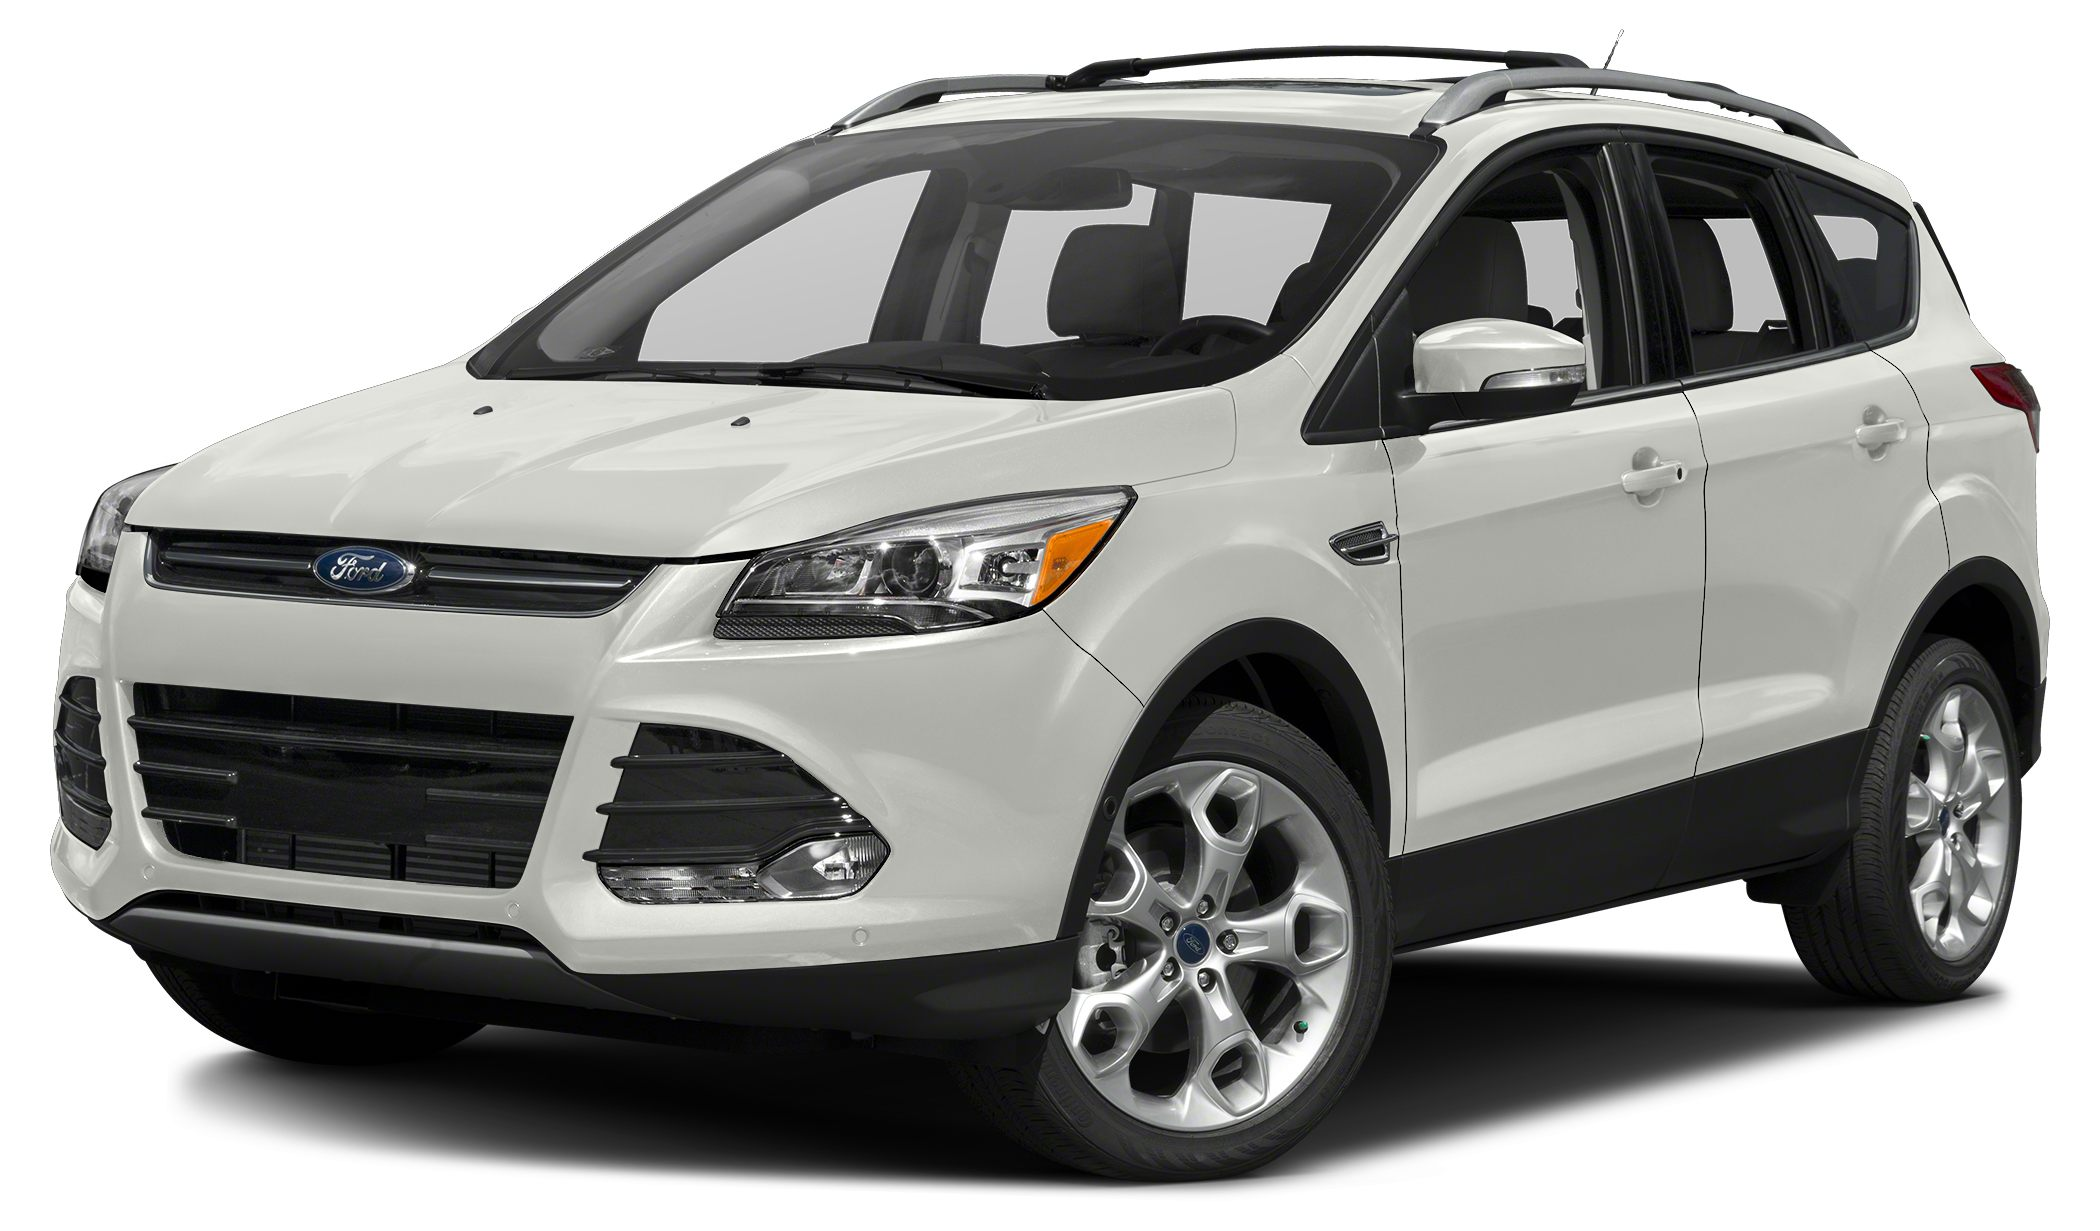 2016 Ford Escape Titanium This special Internet buy for price reflects all applicable manufacturer